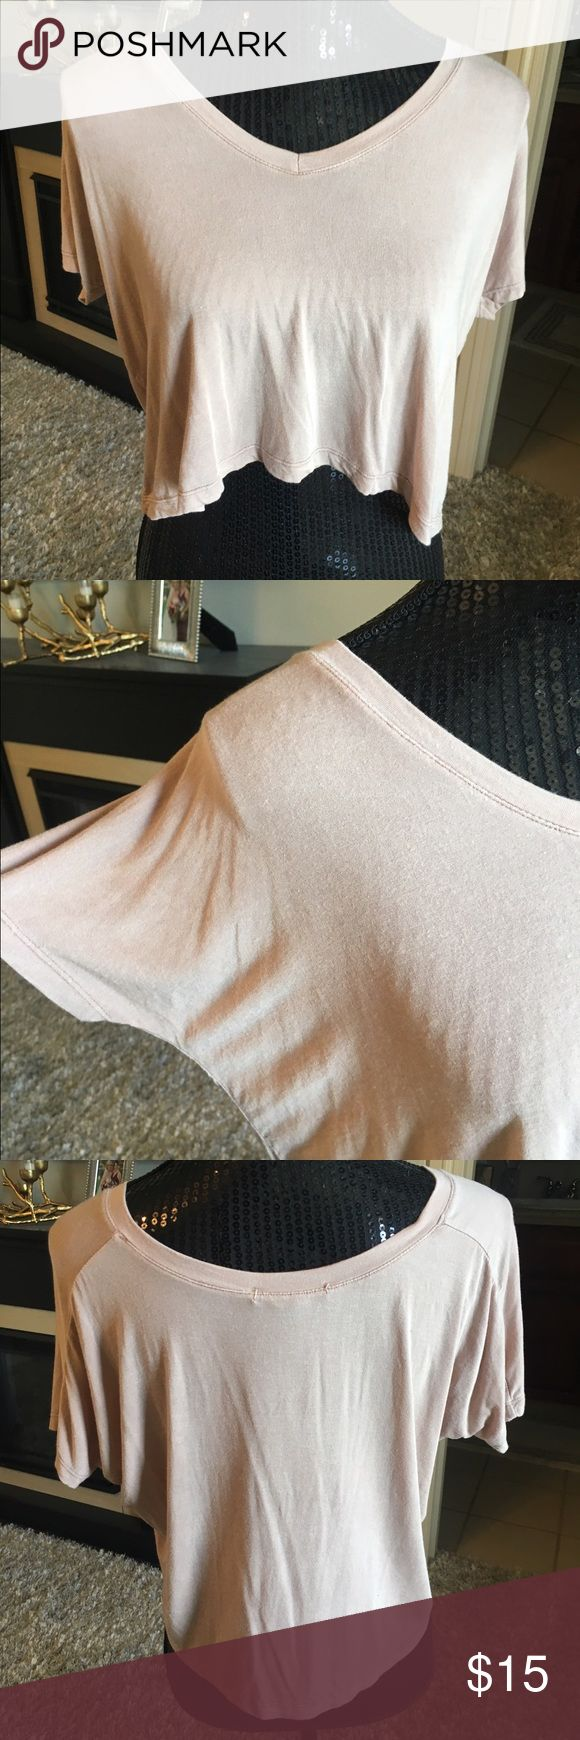 Brandy Melville cream crop top NWOT Brandy Melville cream crop top NWOT I never wore this! It's super cute and loose and fun! ONE size Brandy Melville Tops Crop Tops